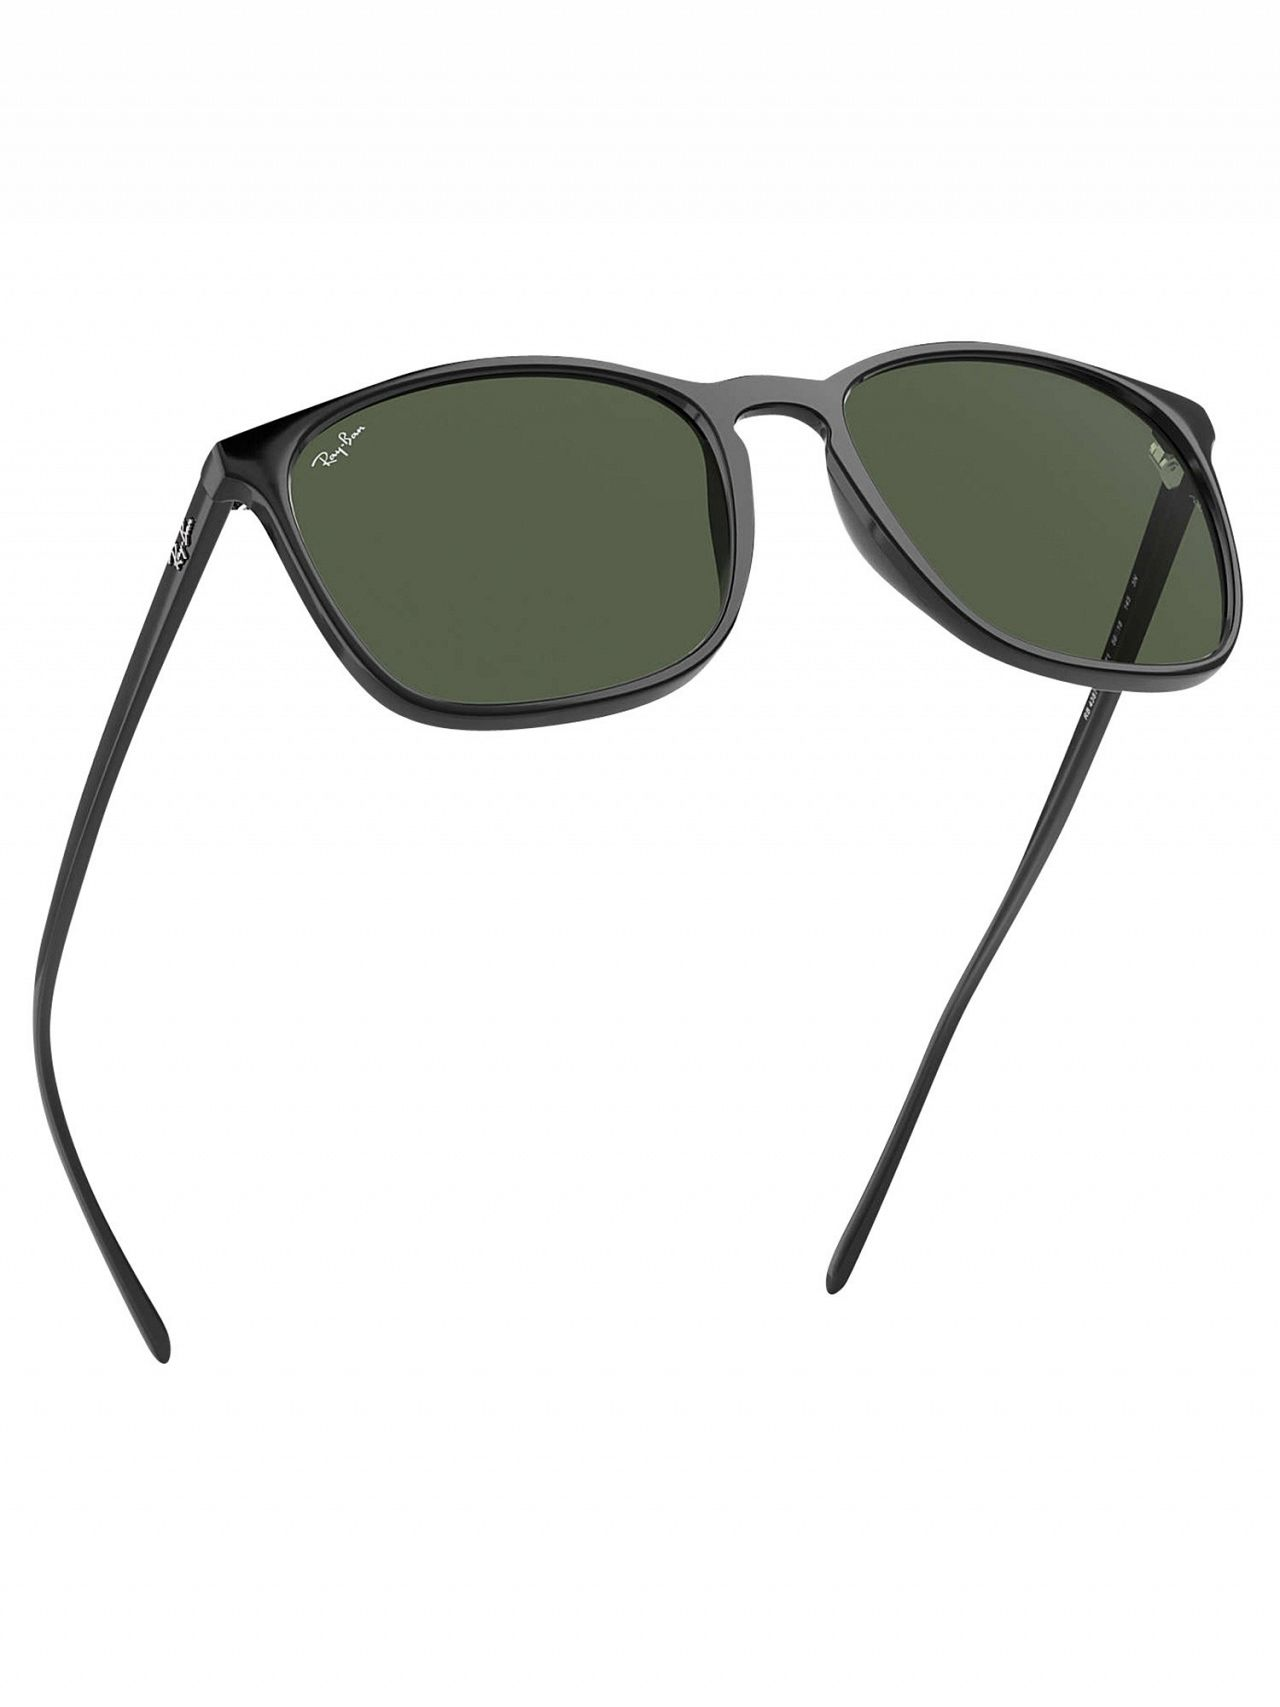 9761adcdd0f54 Ray-Ban Black RB4387 Square Sunglasses   Standout